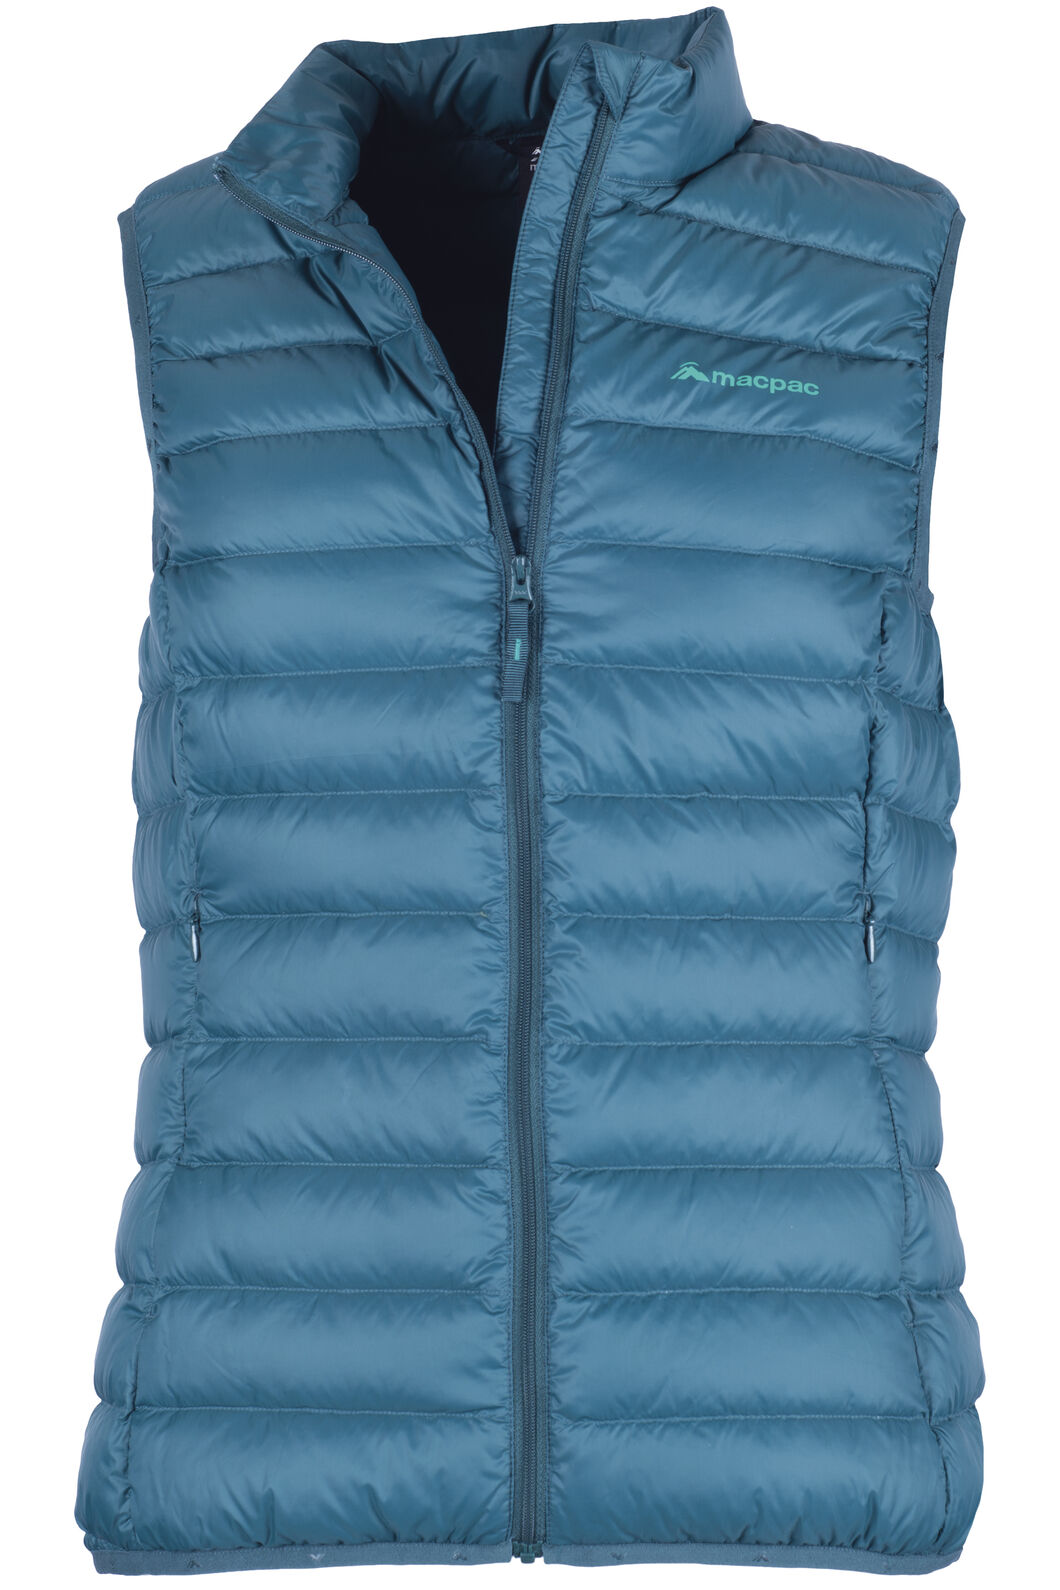 Macpac Uber Light Down Vest — Women's, Deep Teal, hi-res